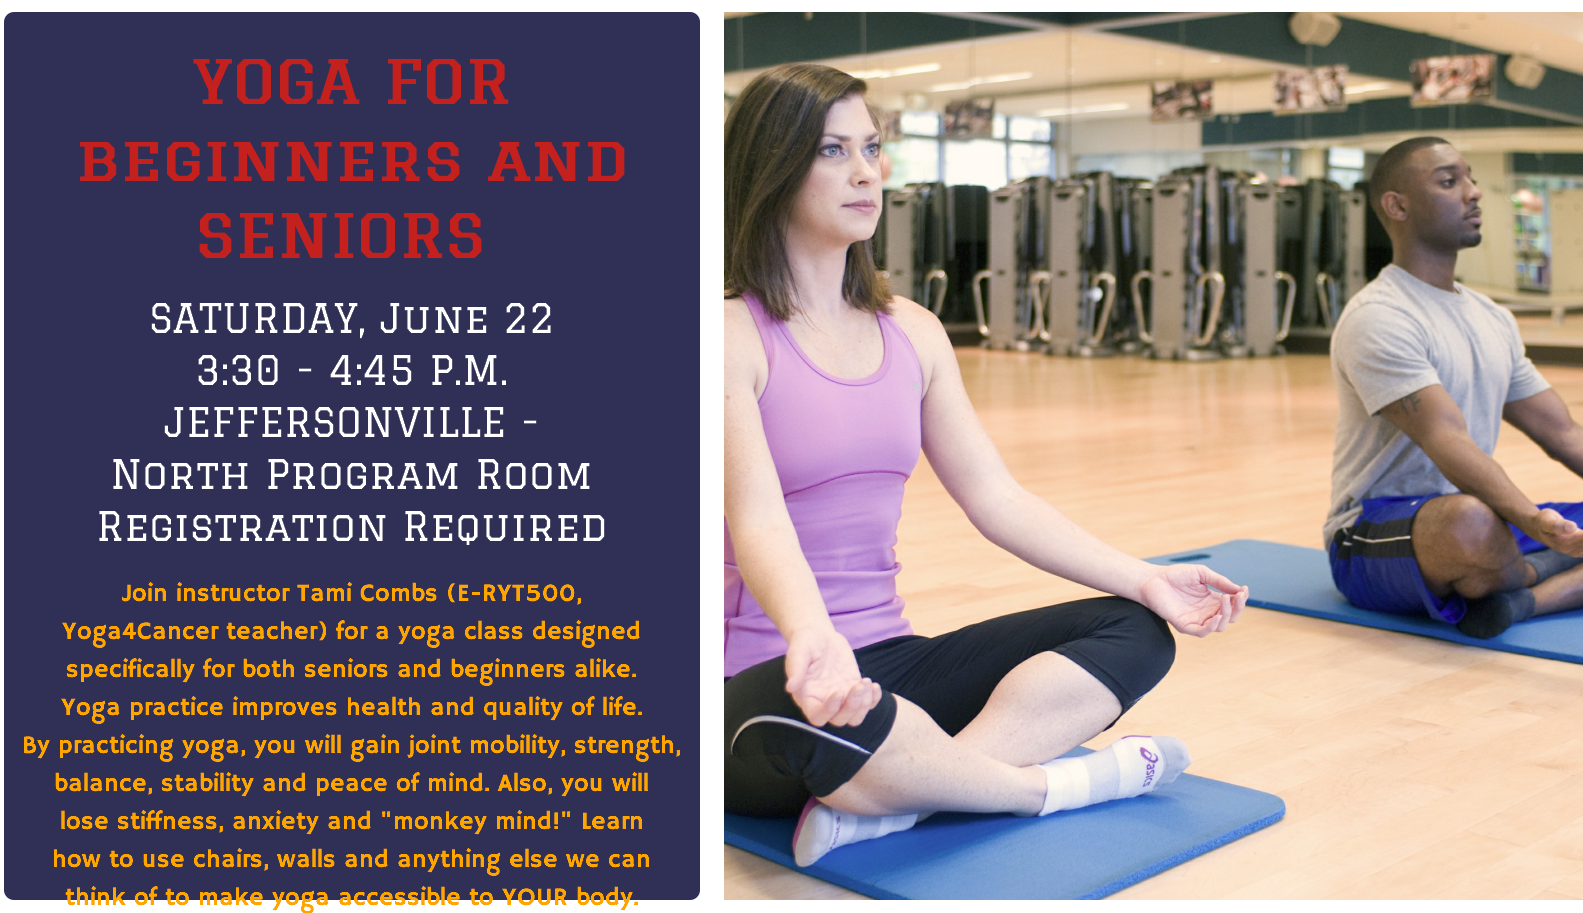 Flyer for monthly Yoga class